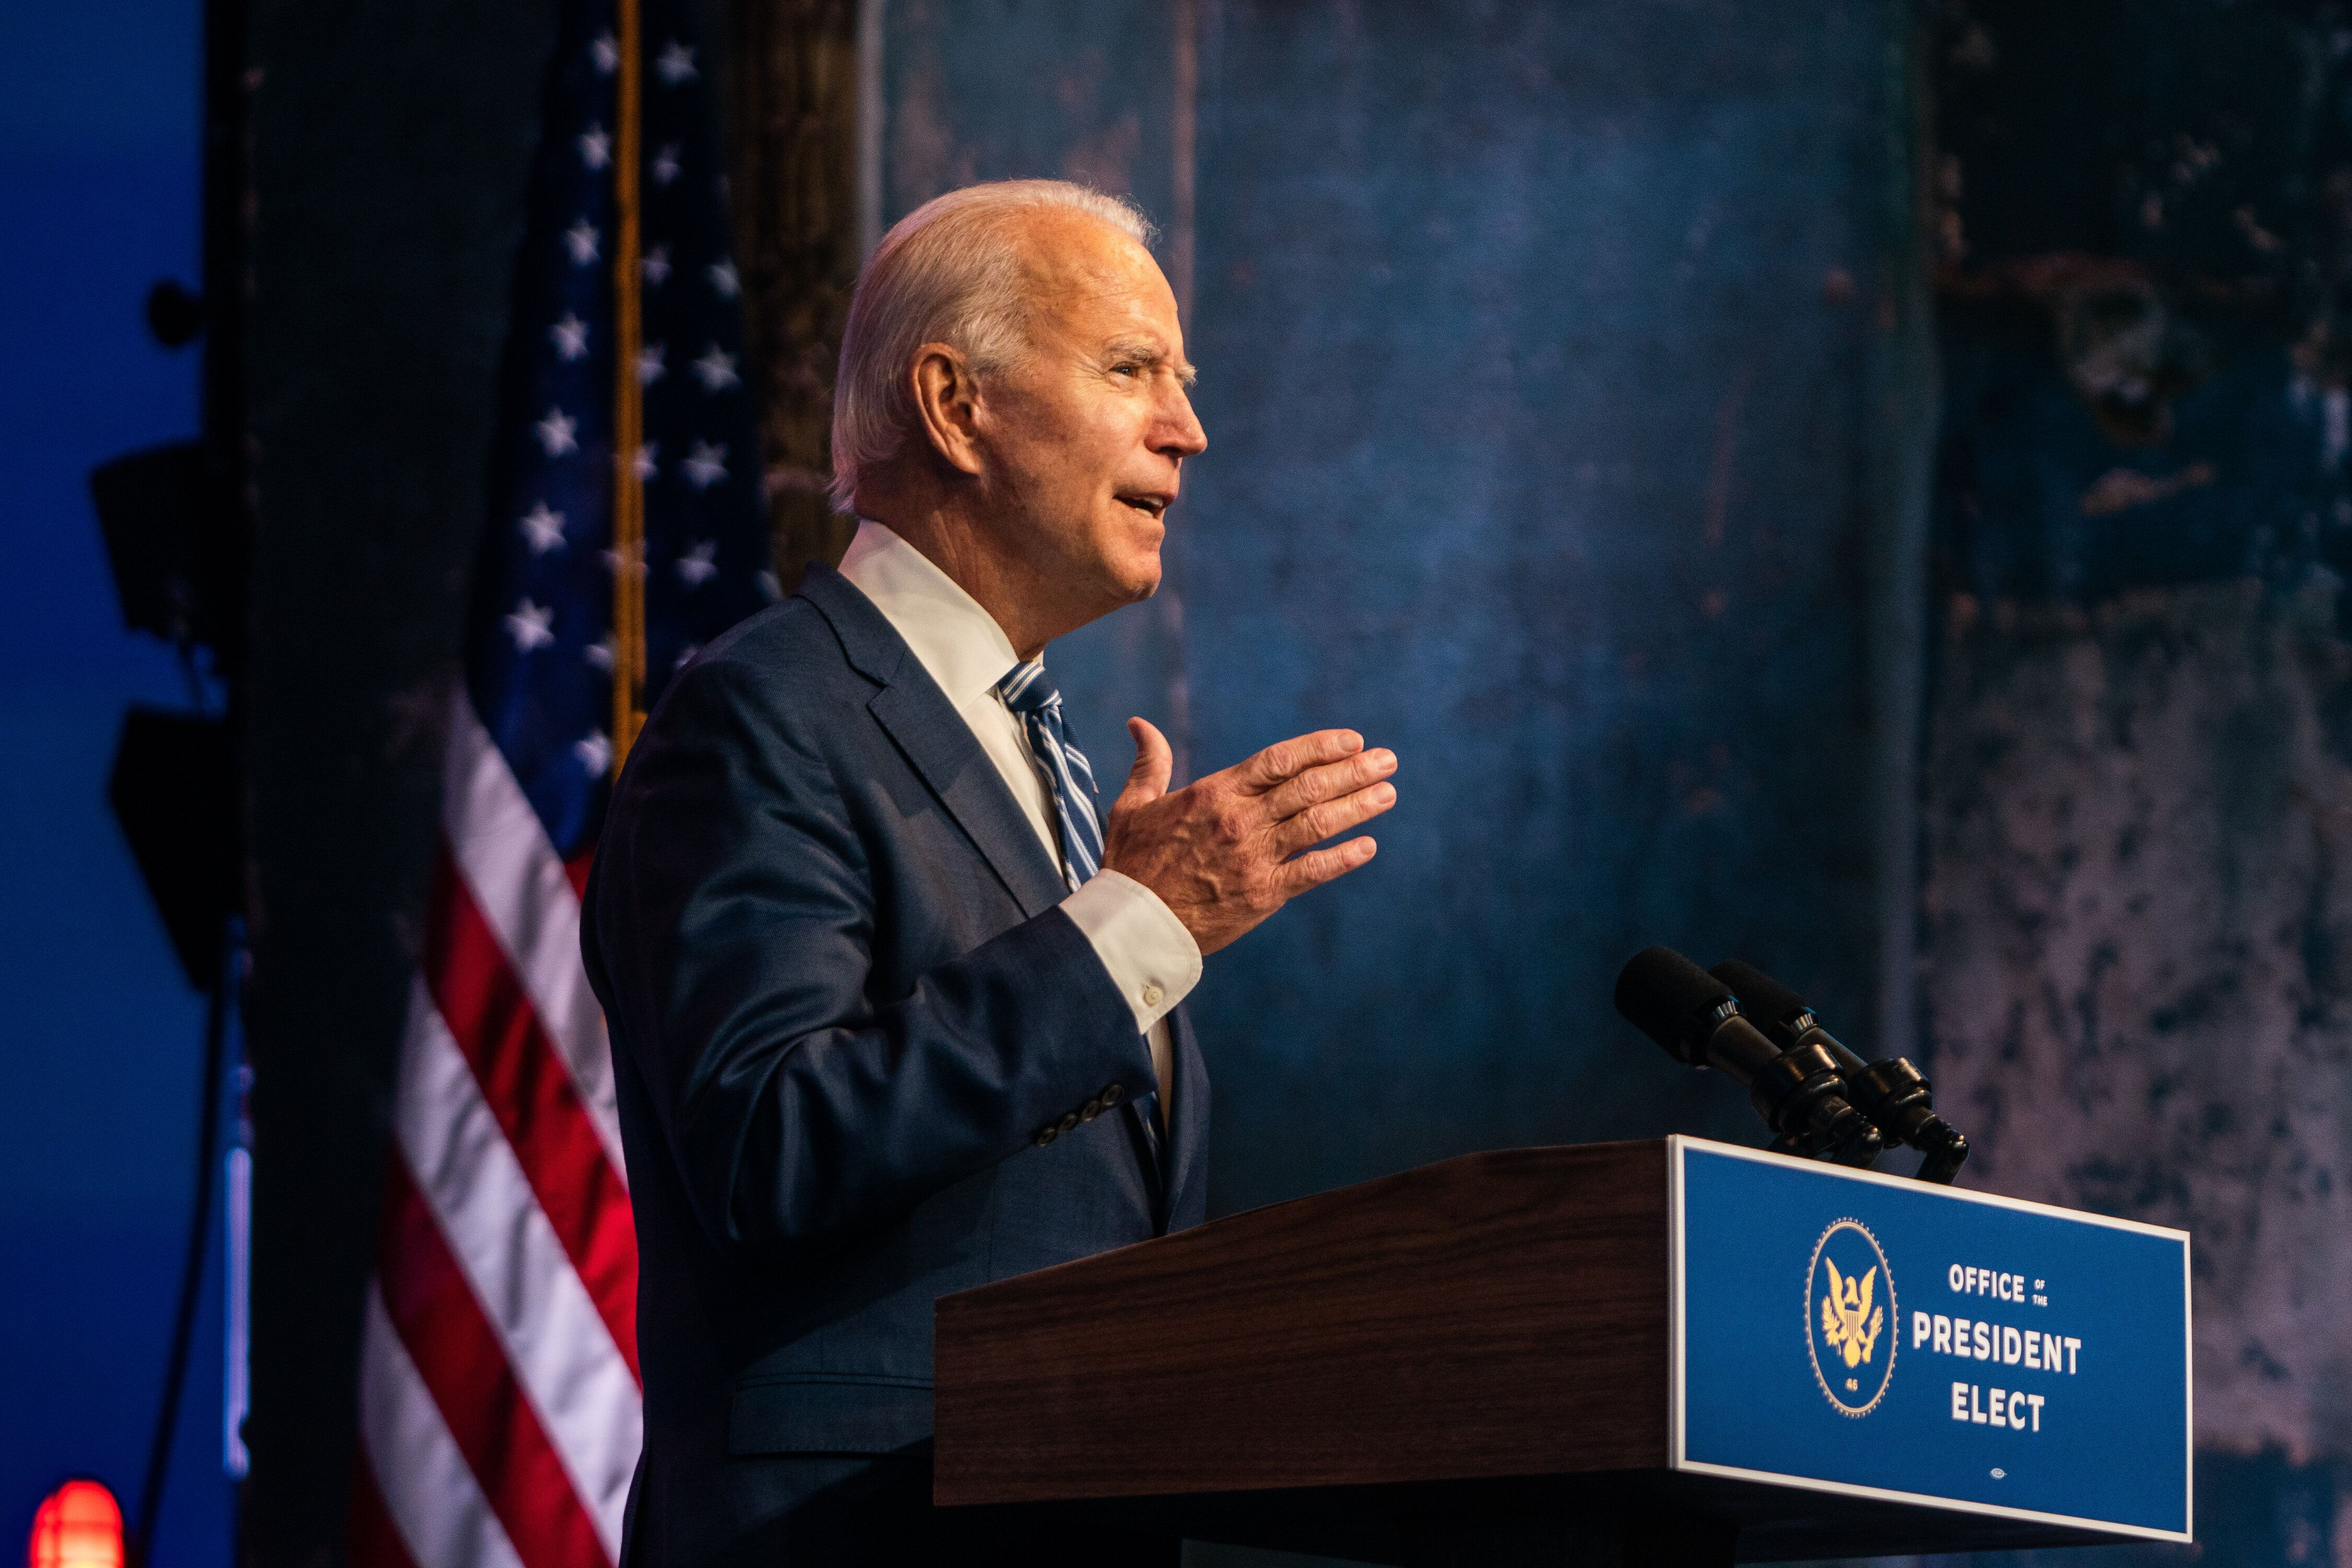 Biden would set an even higher ceiling for refugee admissions than the 110,000 slots approved by President Barack Obama in 20